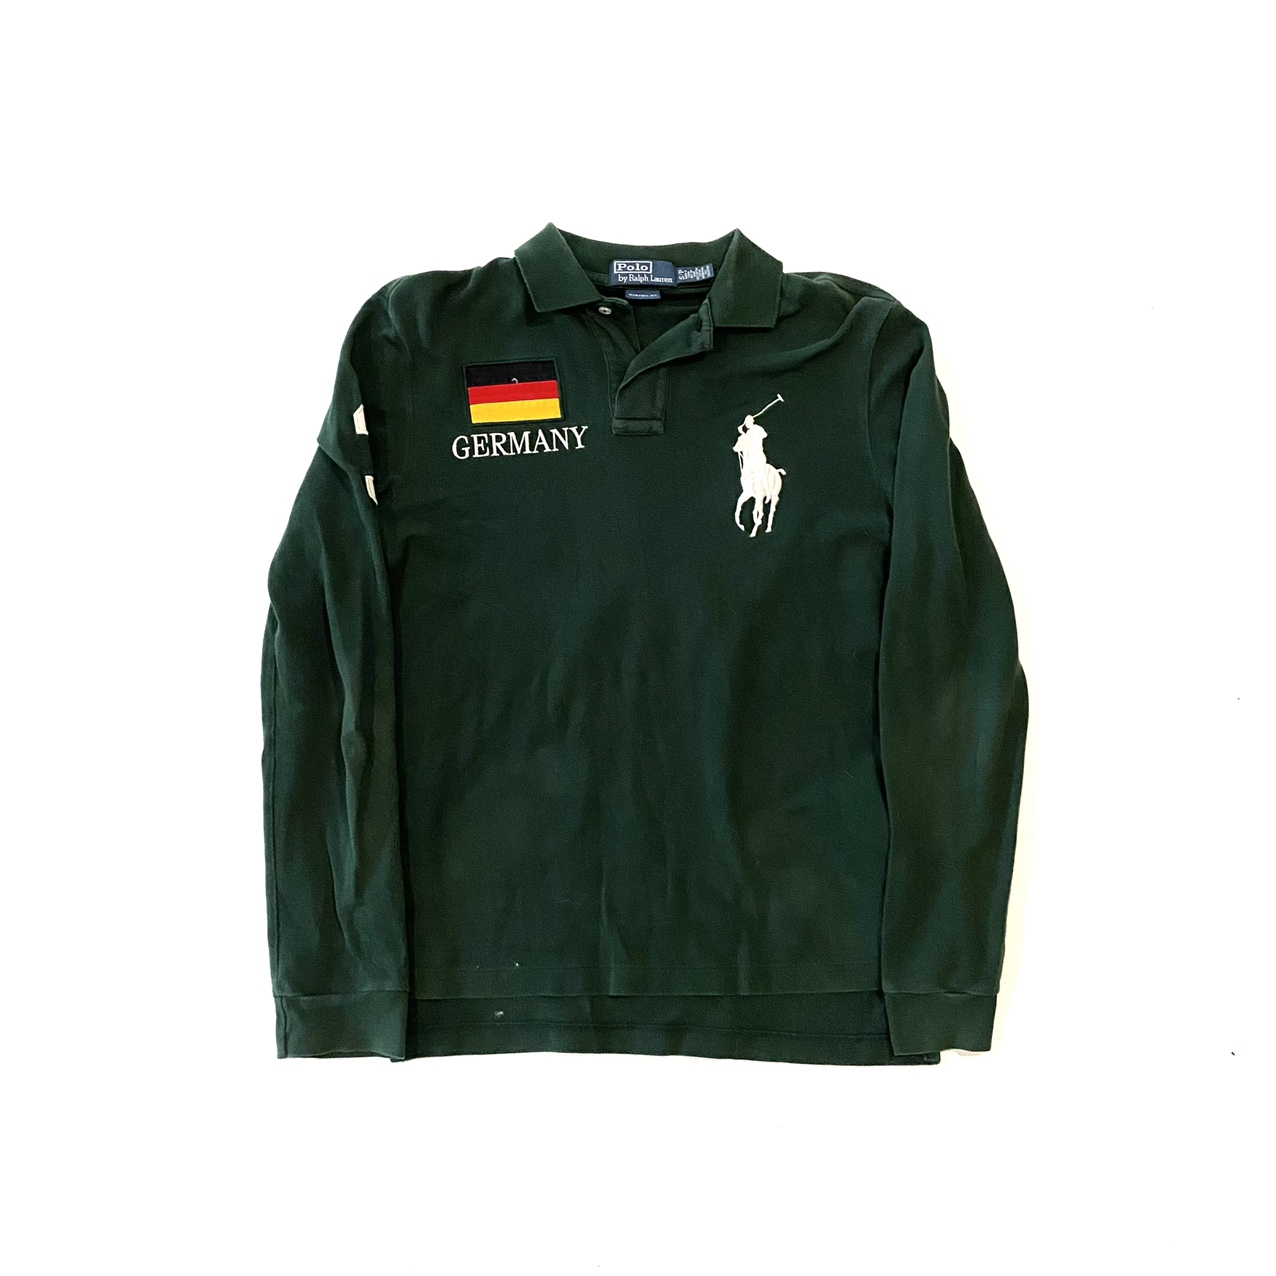 Product Image 1 - Y2K POLO GERMANY RUGBY SHIRT